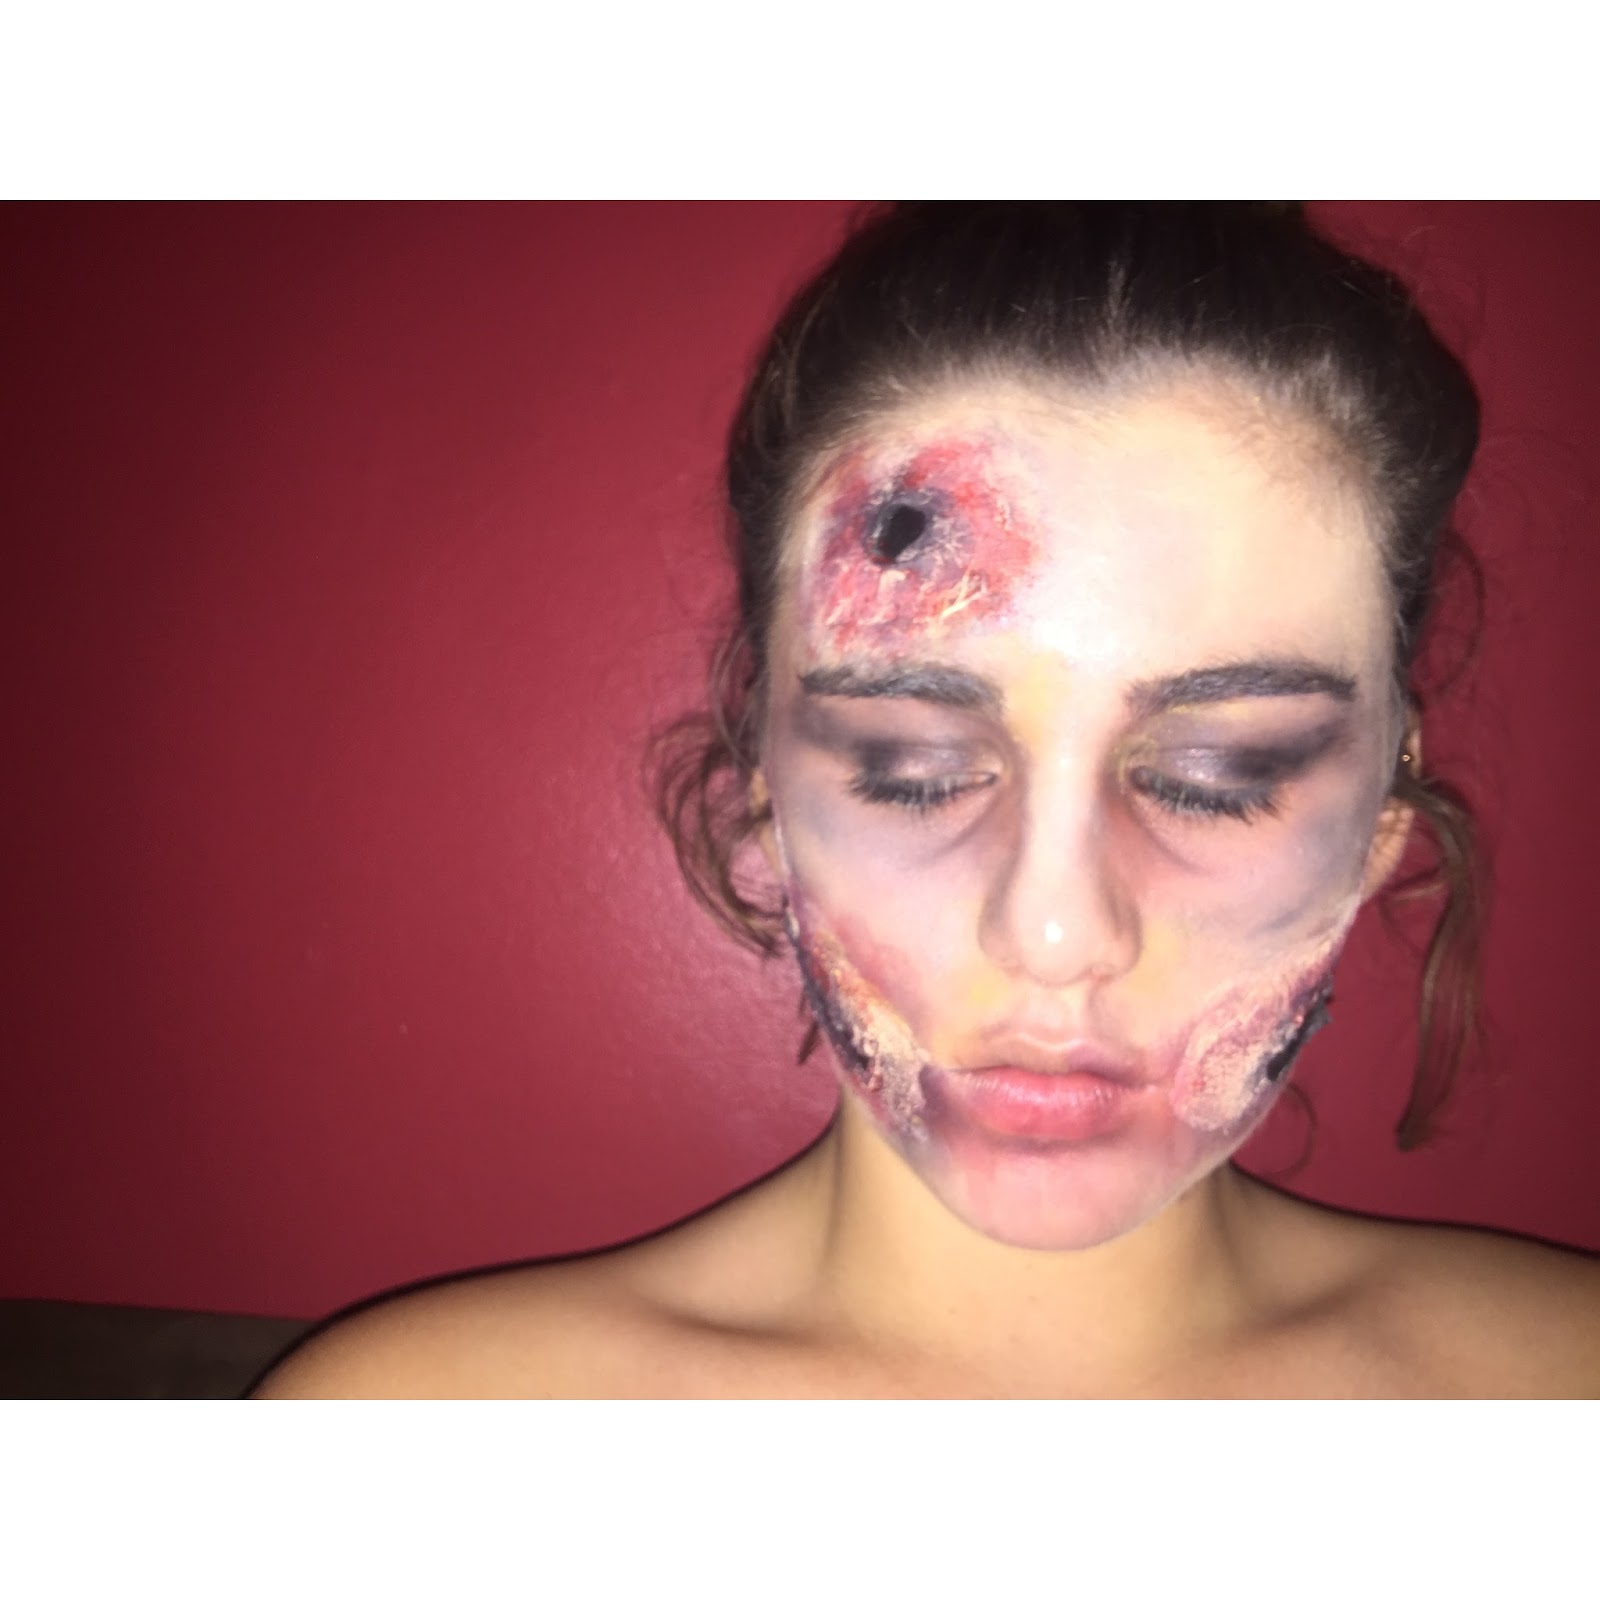 casualty special effects makeup college